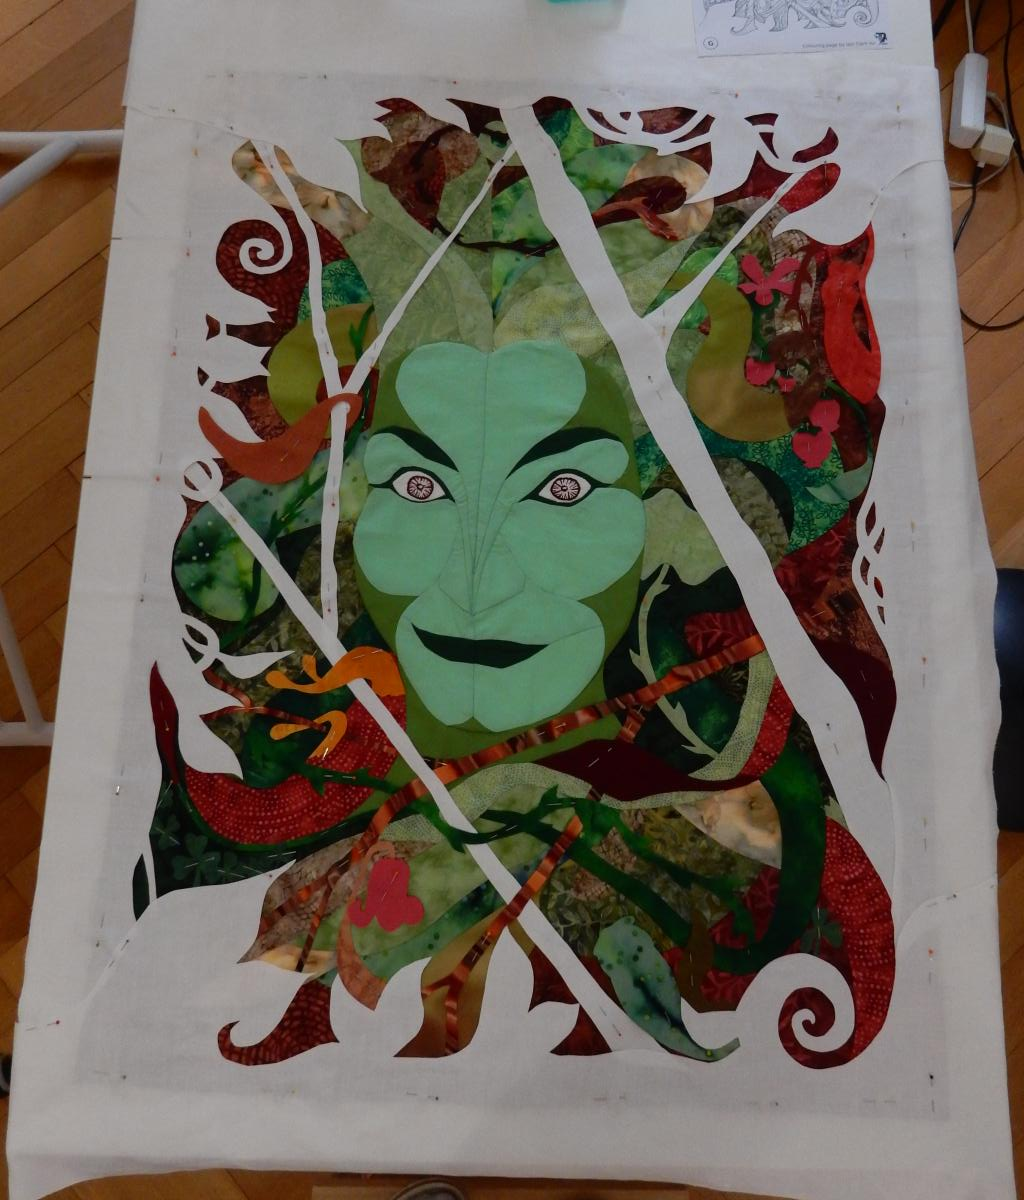 Green Woman - foreground in position